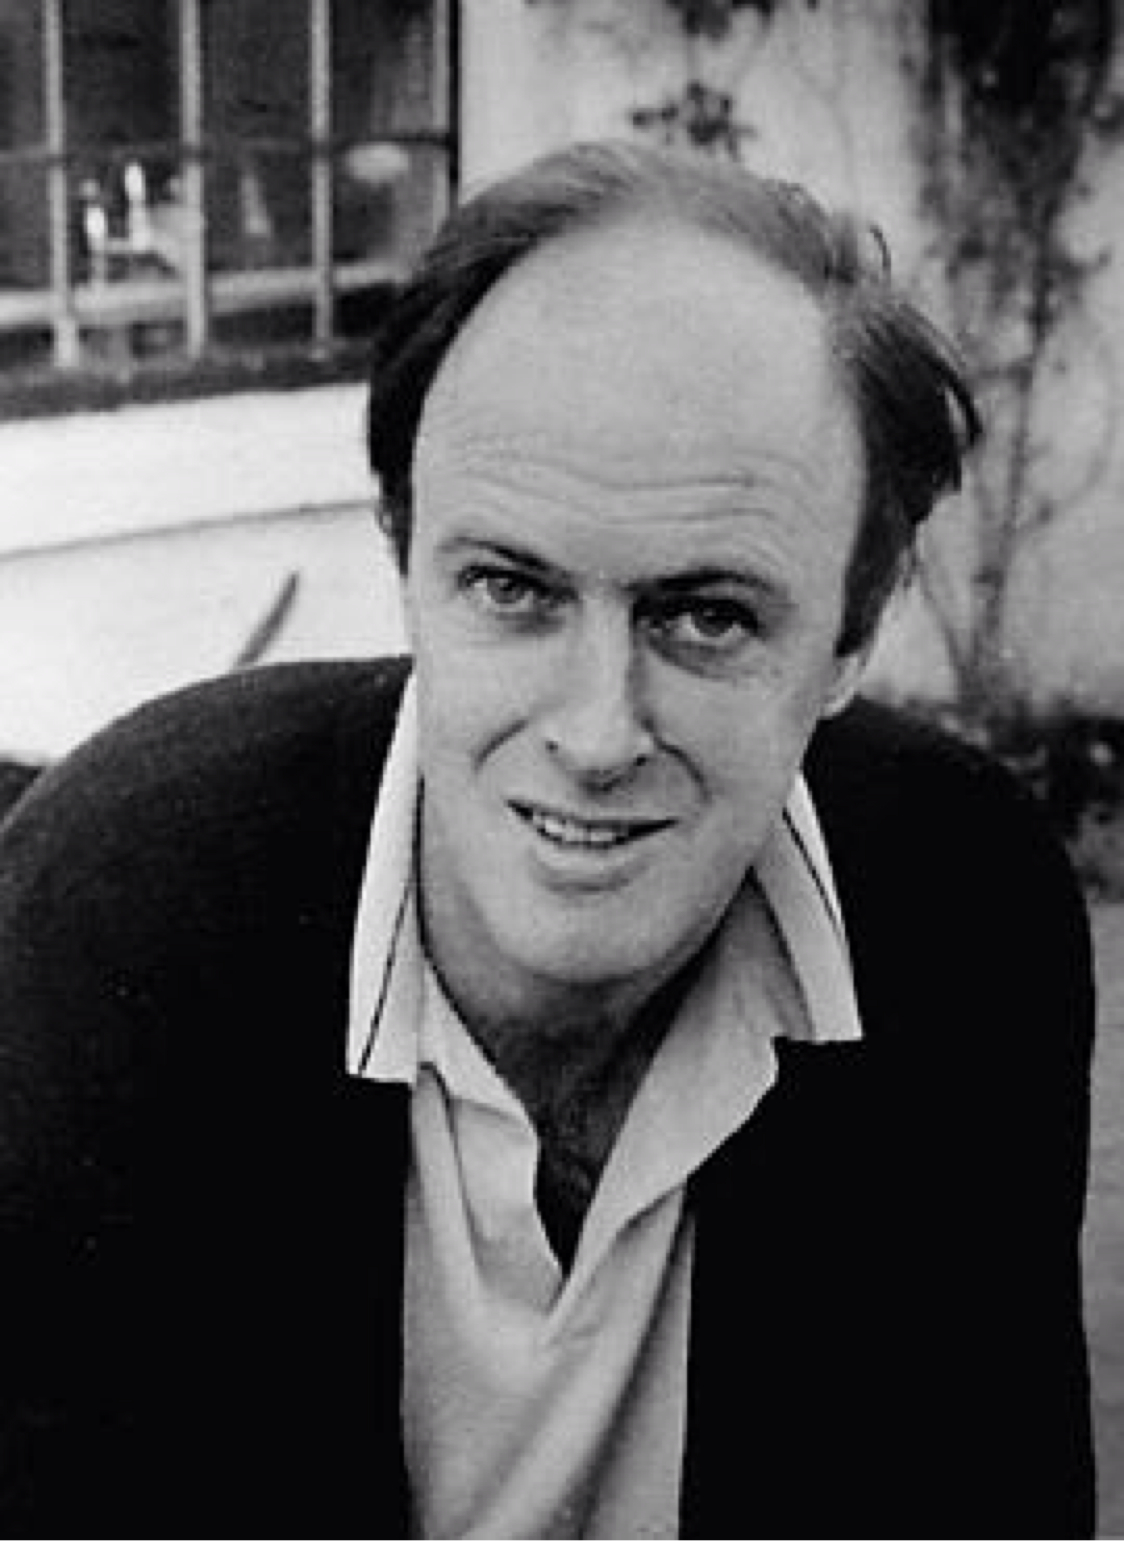 roald dahl biography This brief roald dahl biography covers the life of a man who was beloved to both adults and roald dahl is most famous for his children's books he also was proudest of his stories for children.